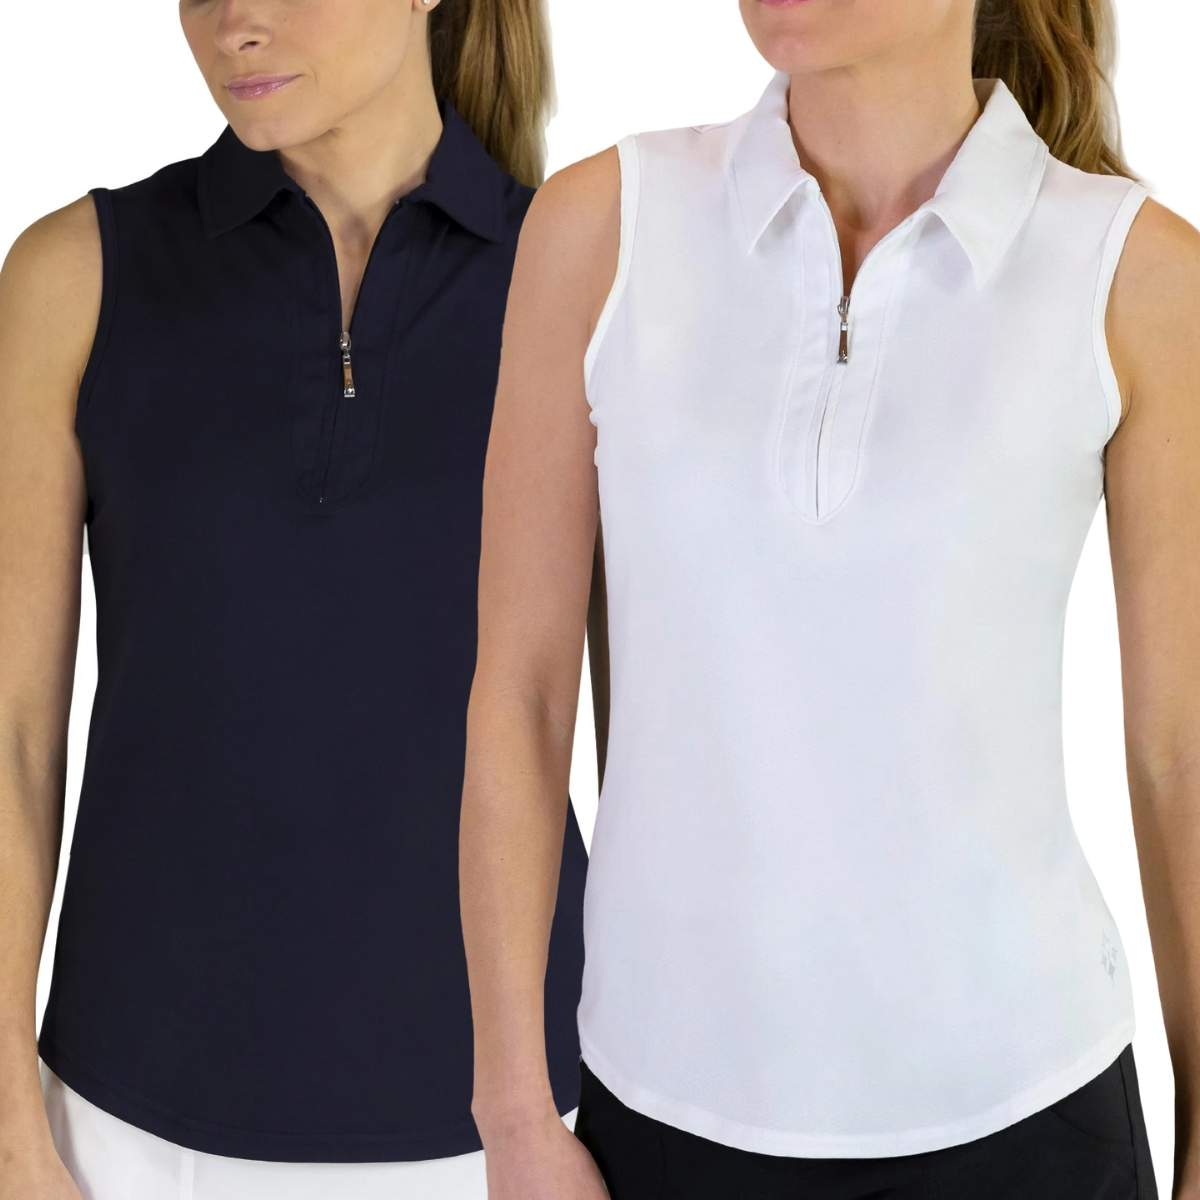 Jofit Women's Jaquard Sleeveless Golf Polo